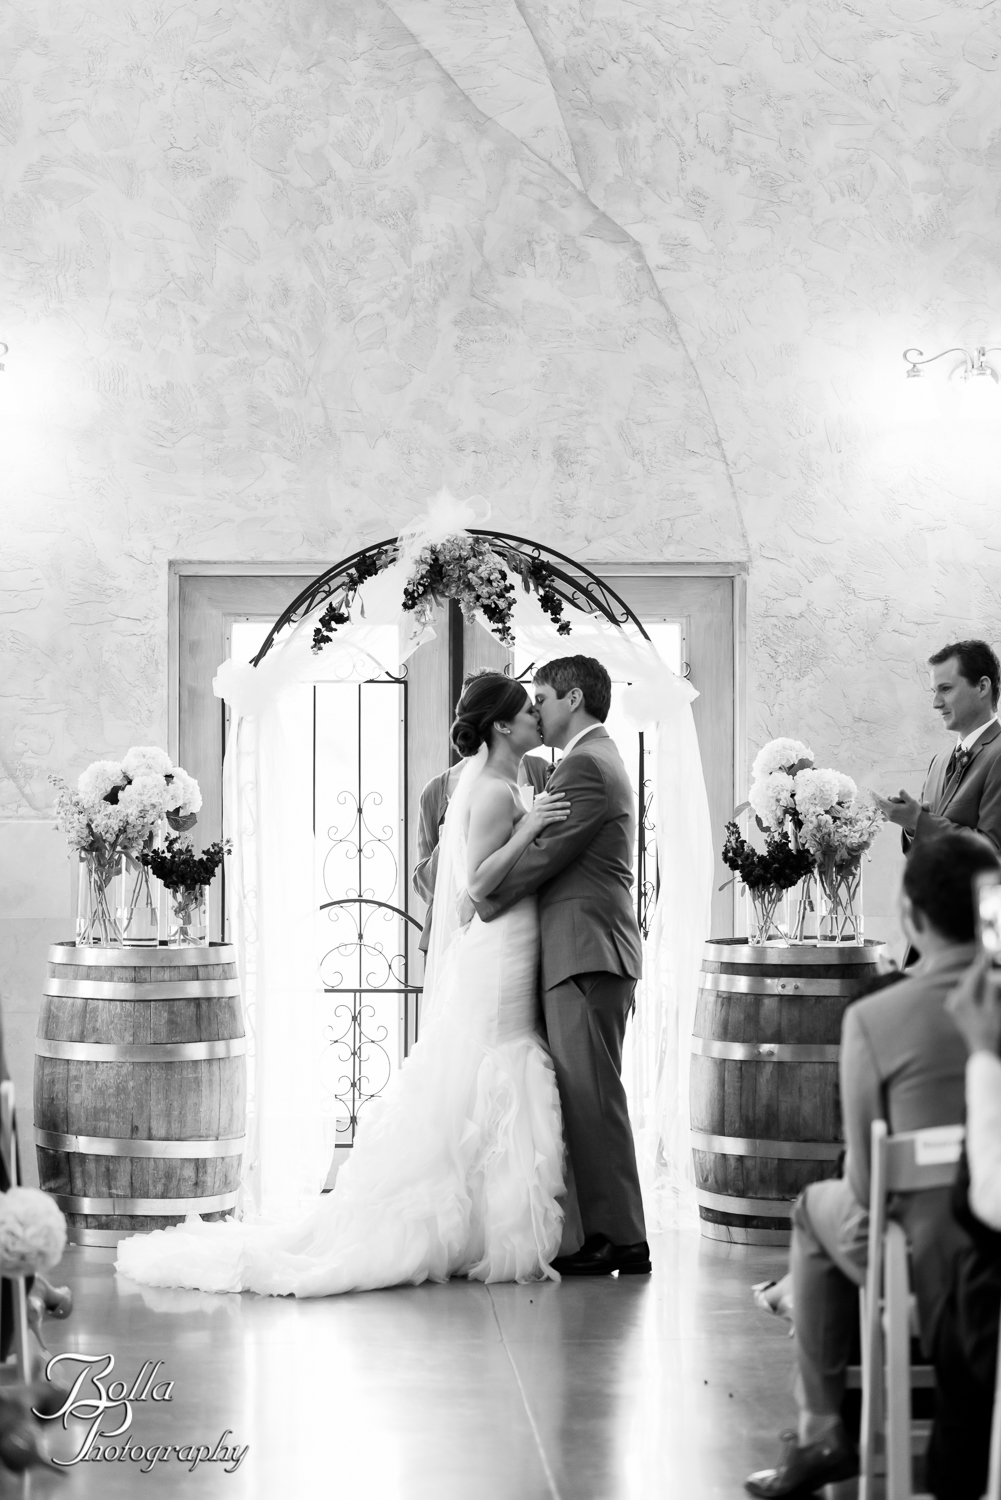 Bolla_Photography_St_Louis_wedding_photographer_Villa_Maire_Winery-0284.jpg